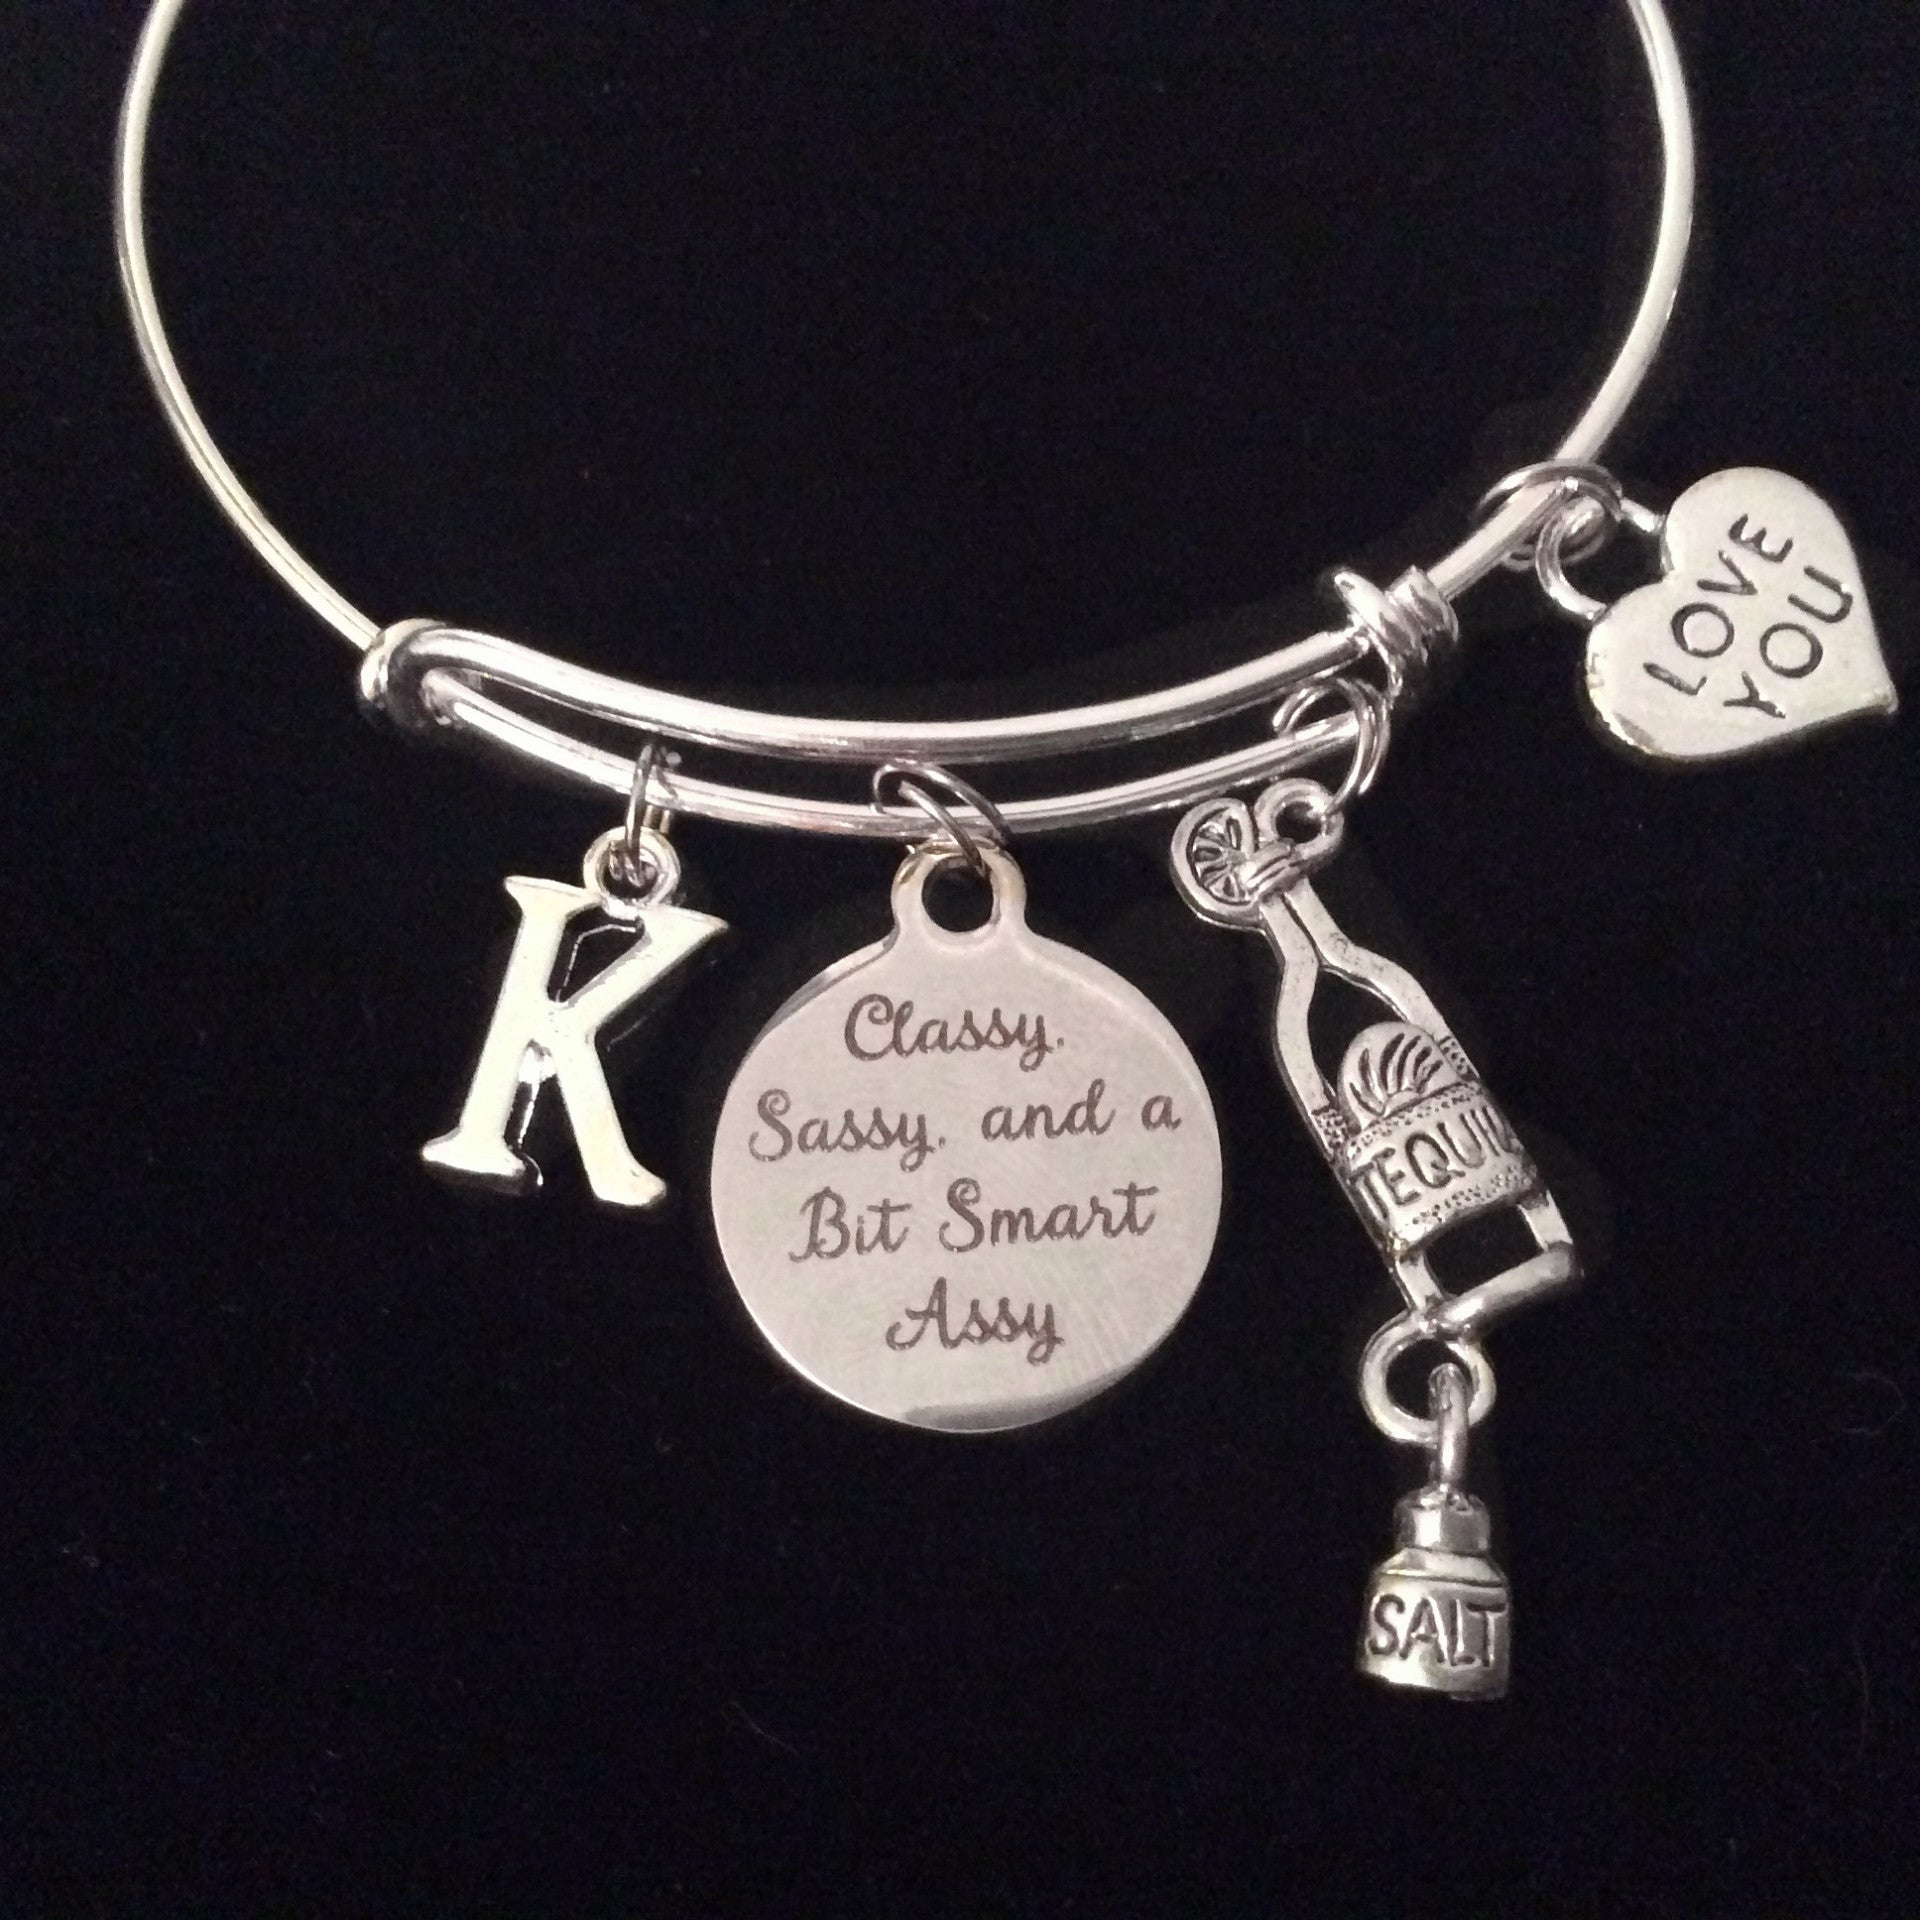 img sabo thomas club s personal precious bracelet classy and indepencia charm blog